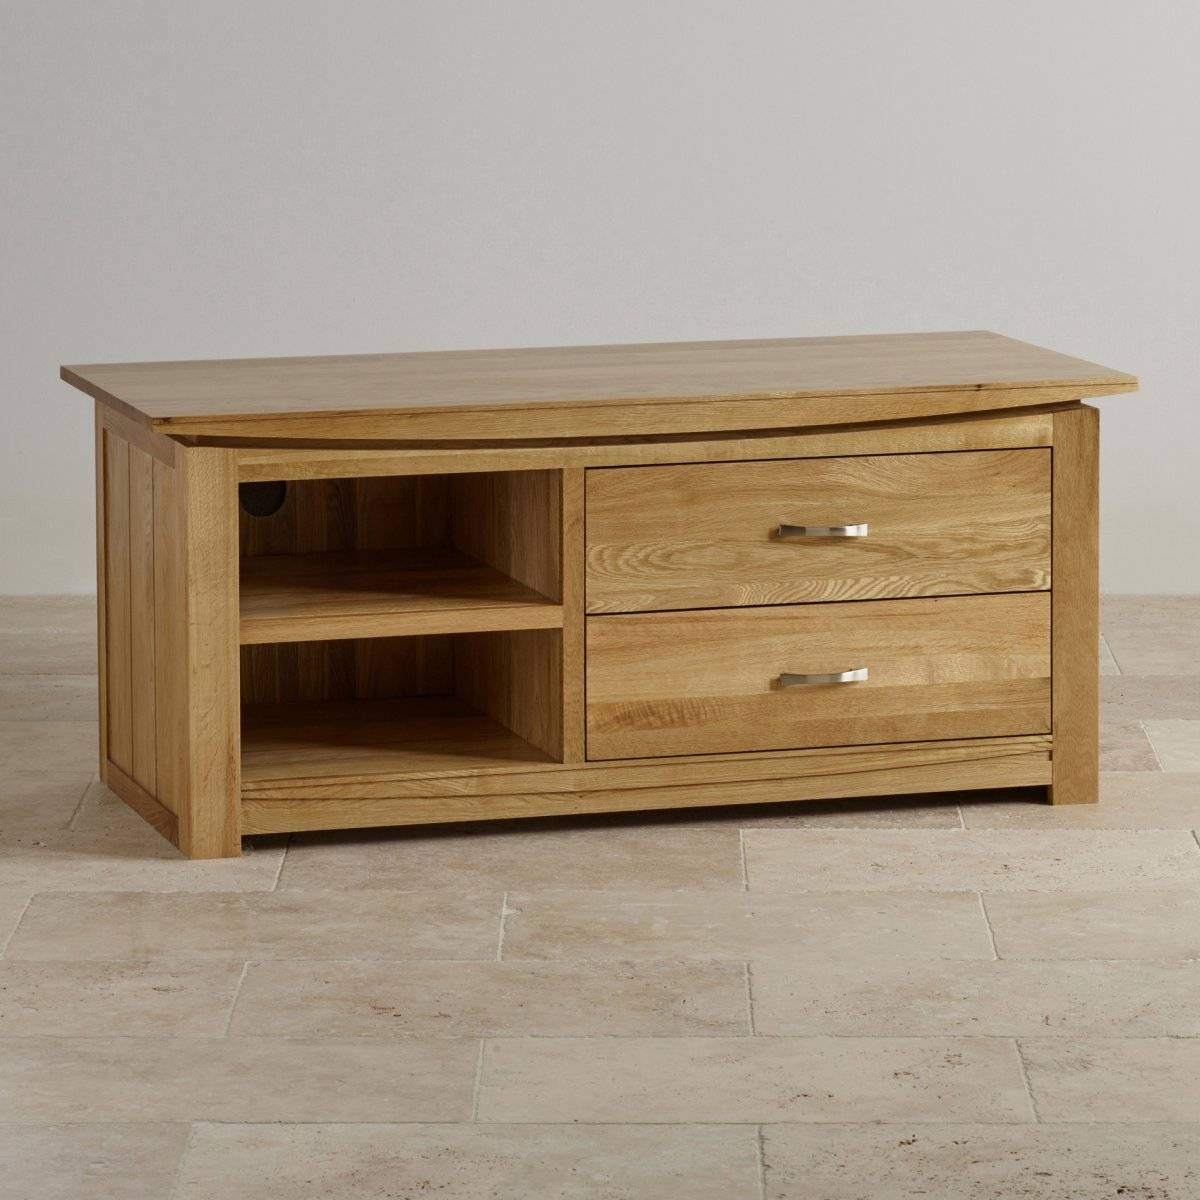 Tokyo Natural Solid Oak Widescreen Tv + Dvd Cabinet for Solid Oak Tv Cabinets (Image 15 of 15)